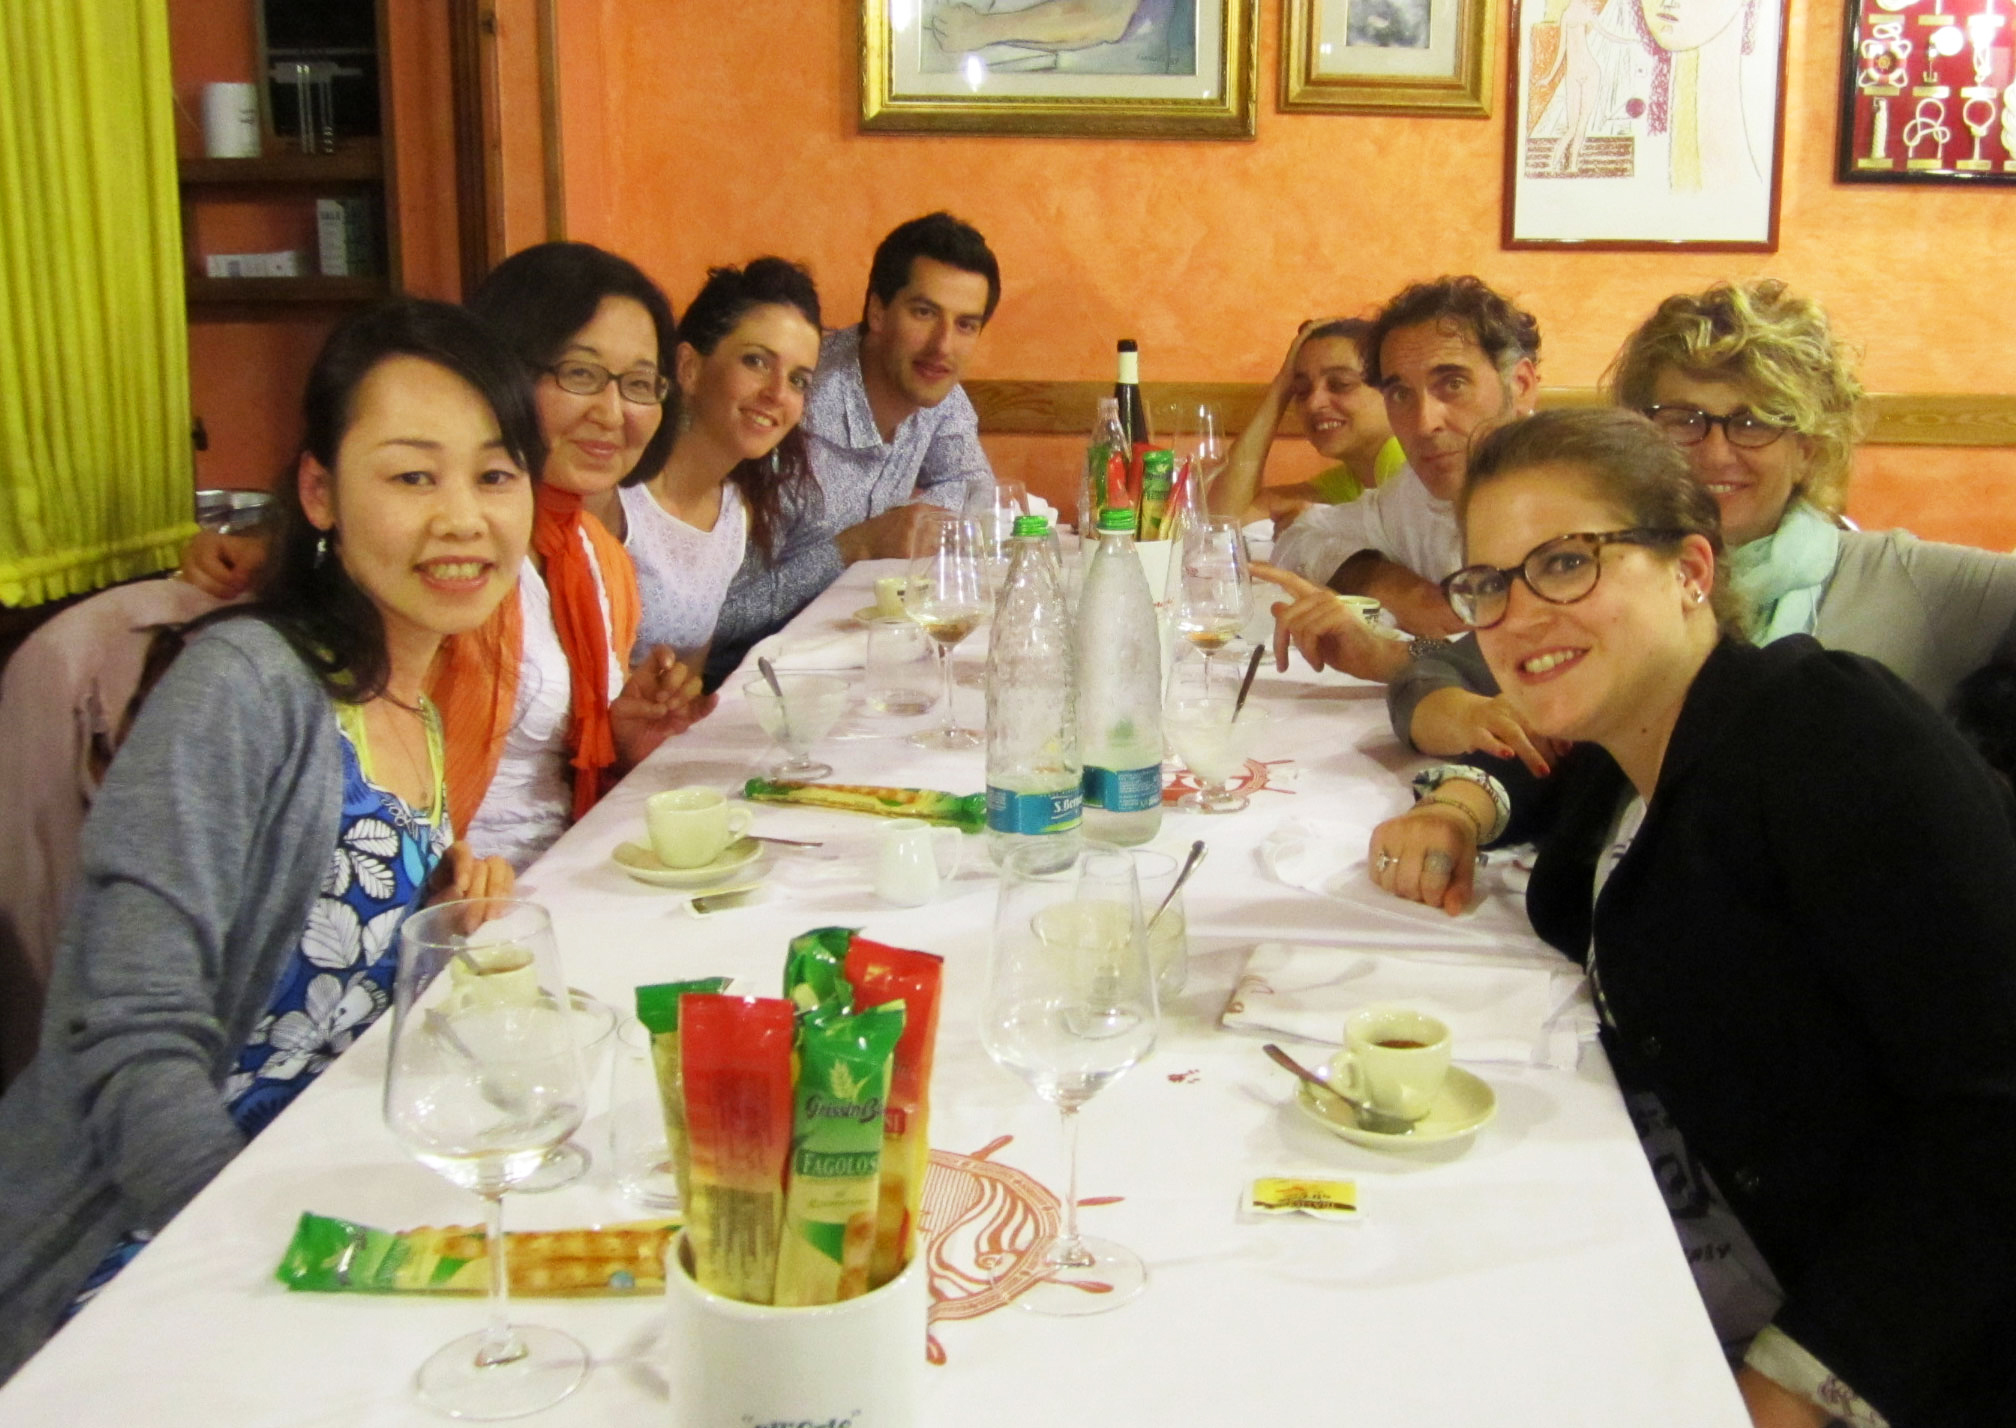 Dinner after the show with project team @Cesena, May 2014